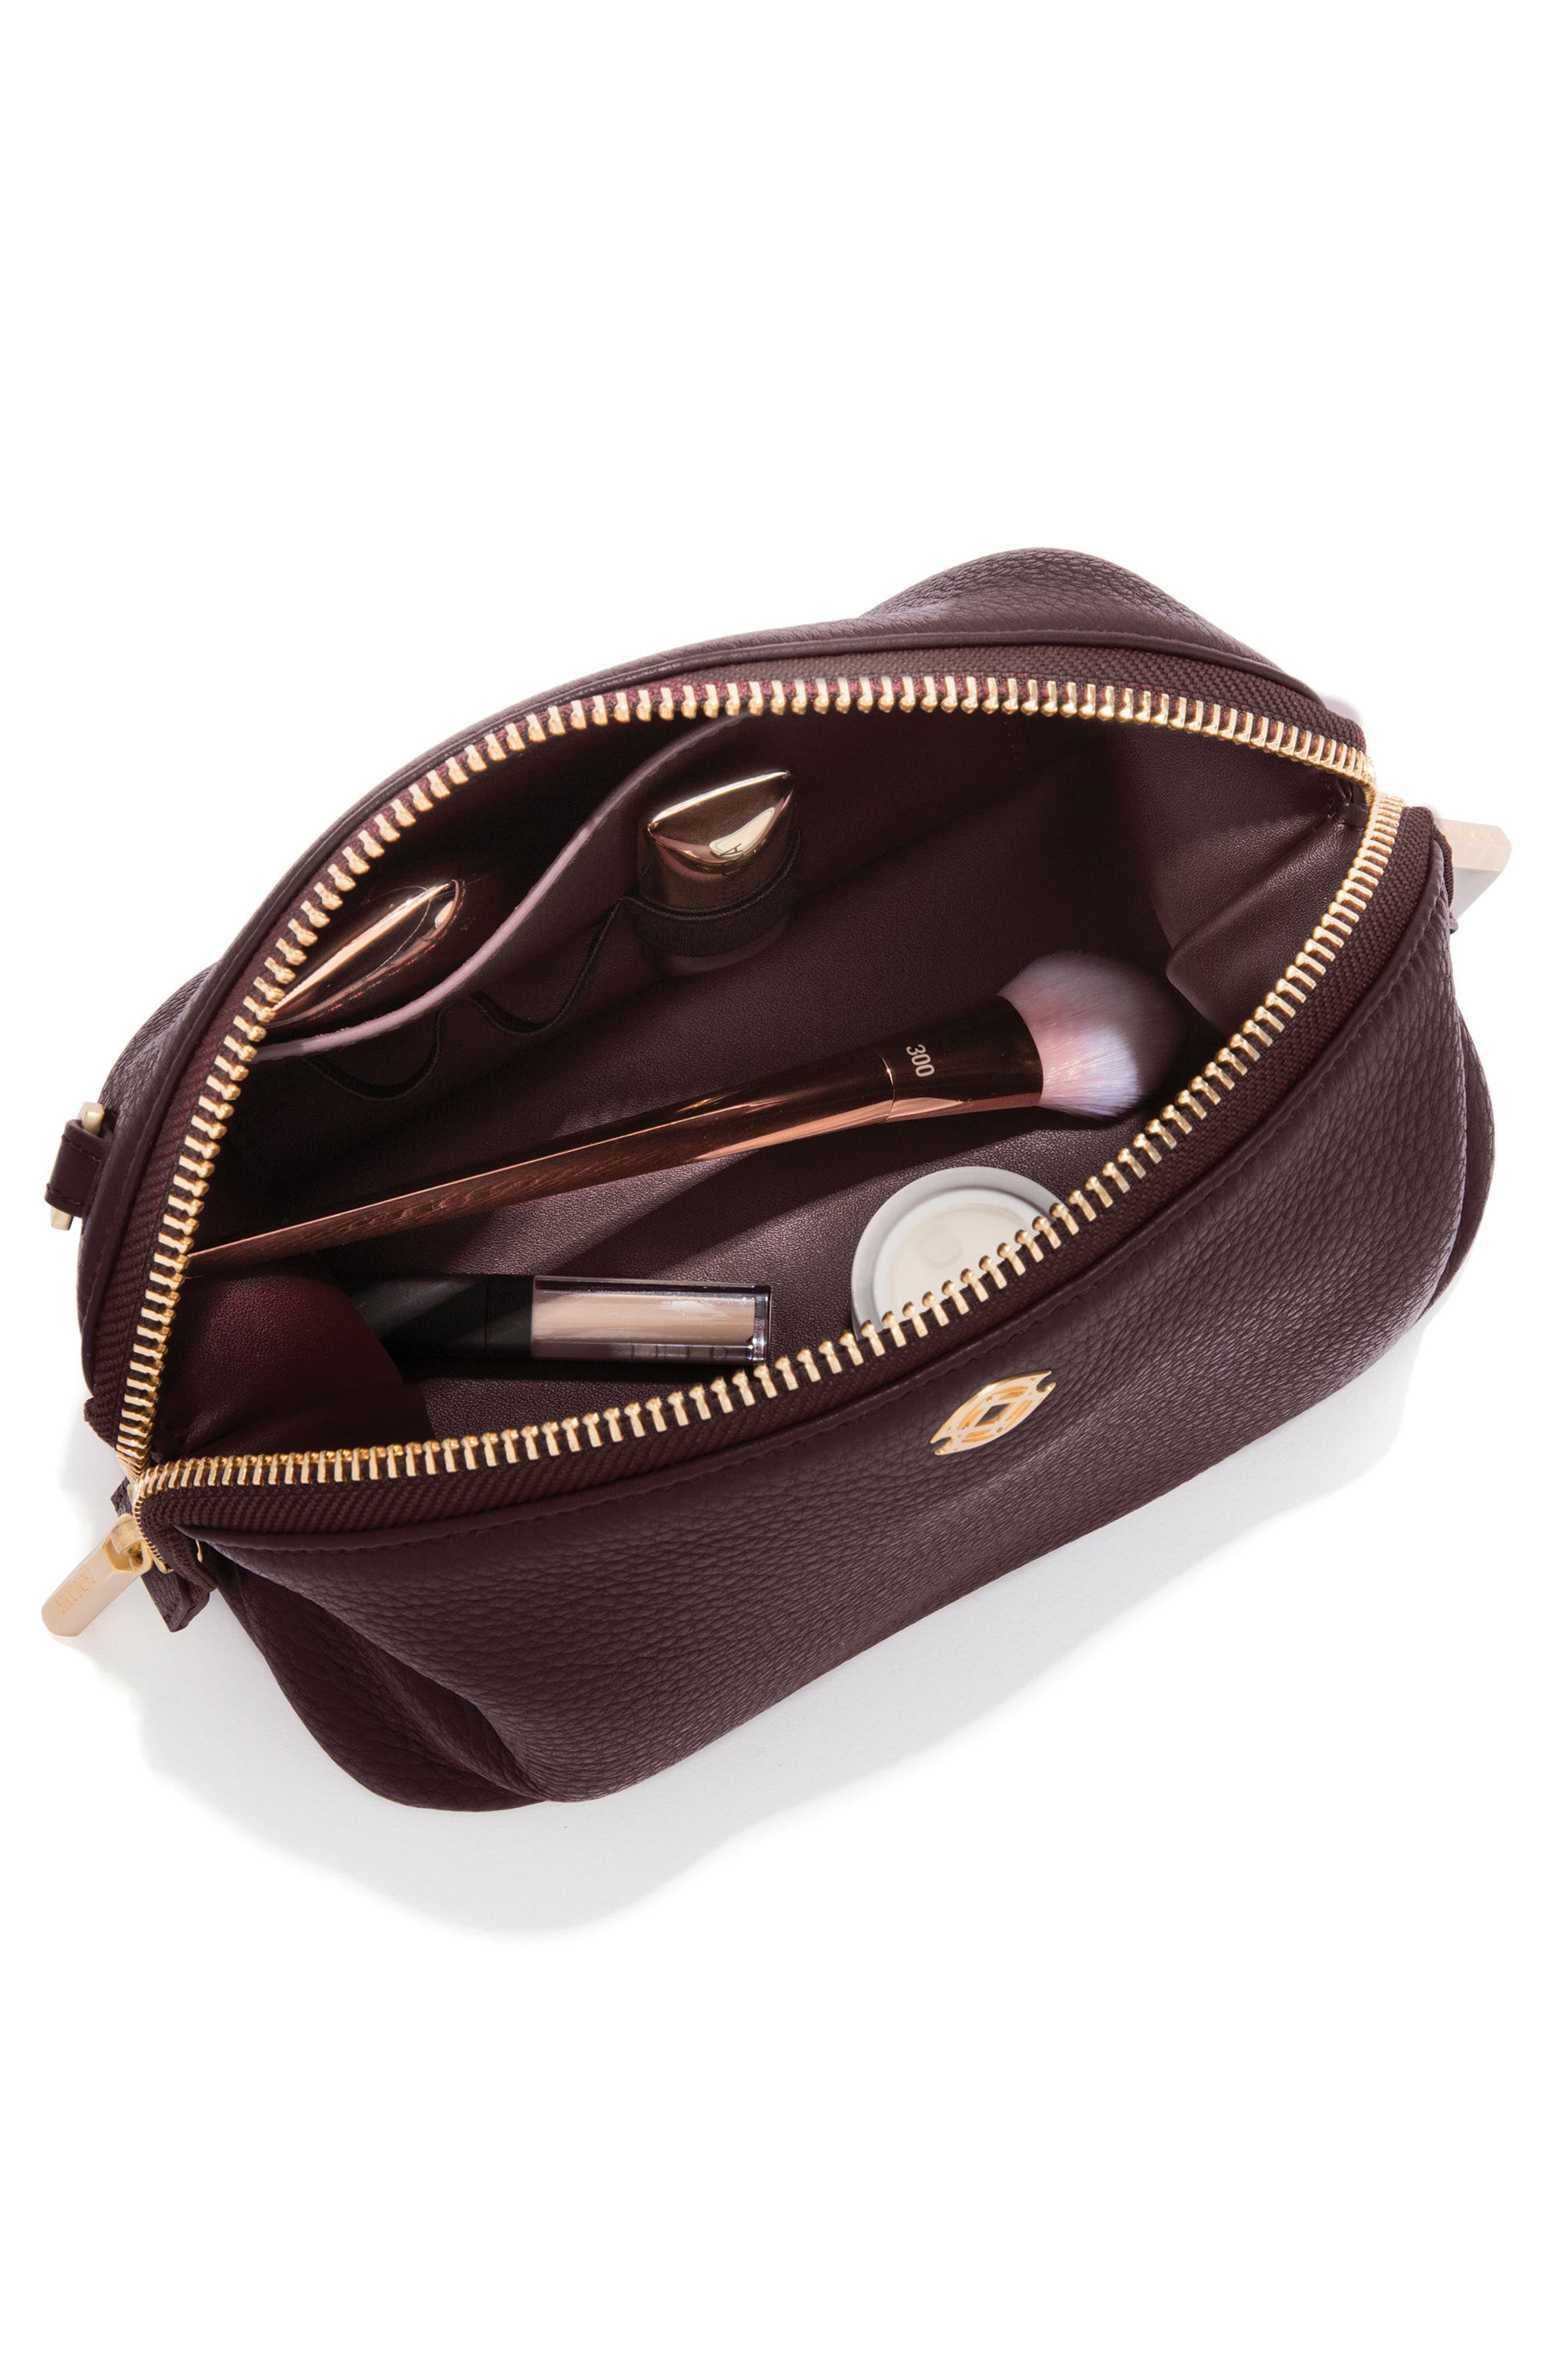 Large Lola Leather Cosmetics Pouch,                             Alternate thumbnail 4, color,                             OXBLOOD